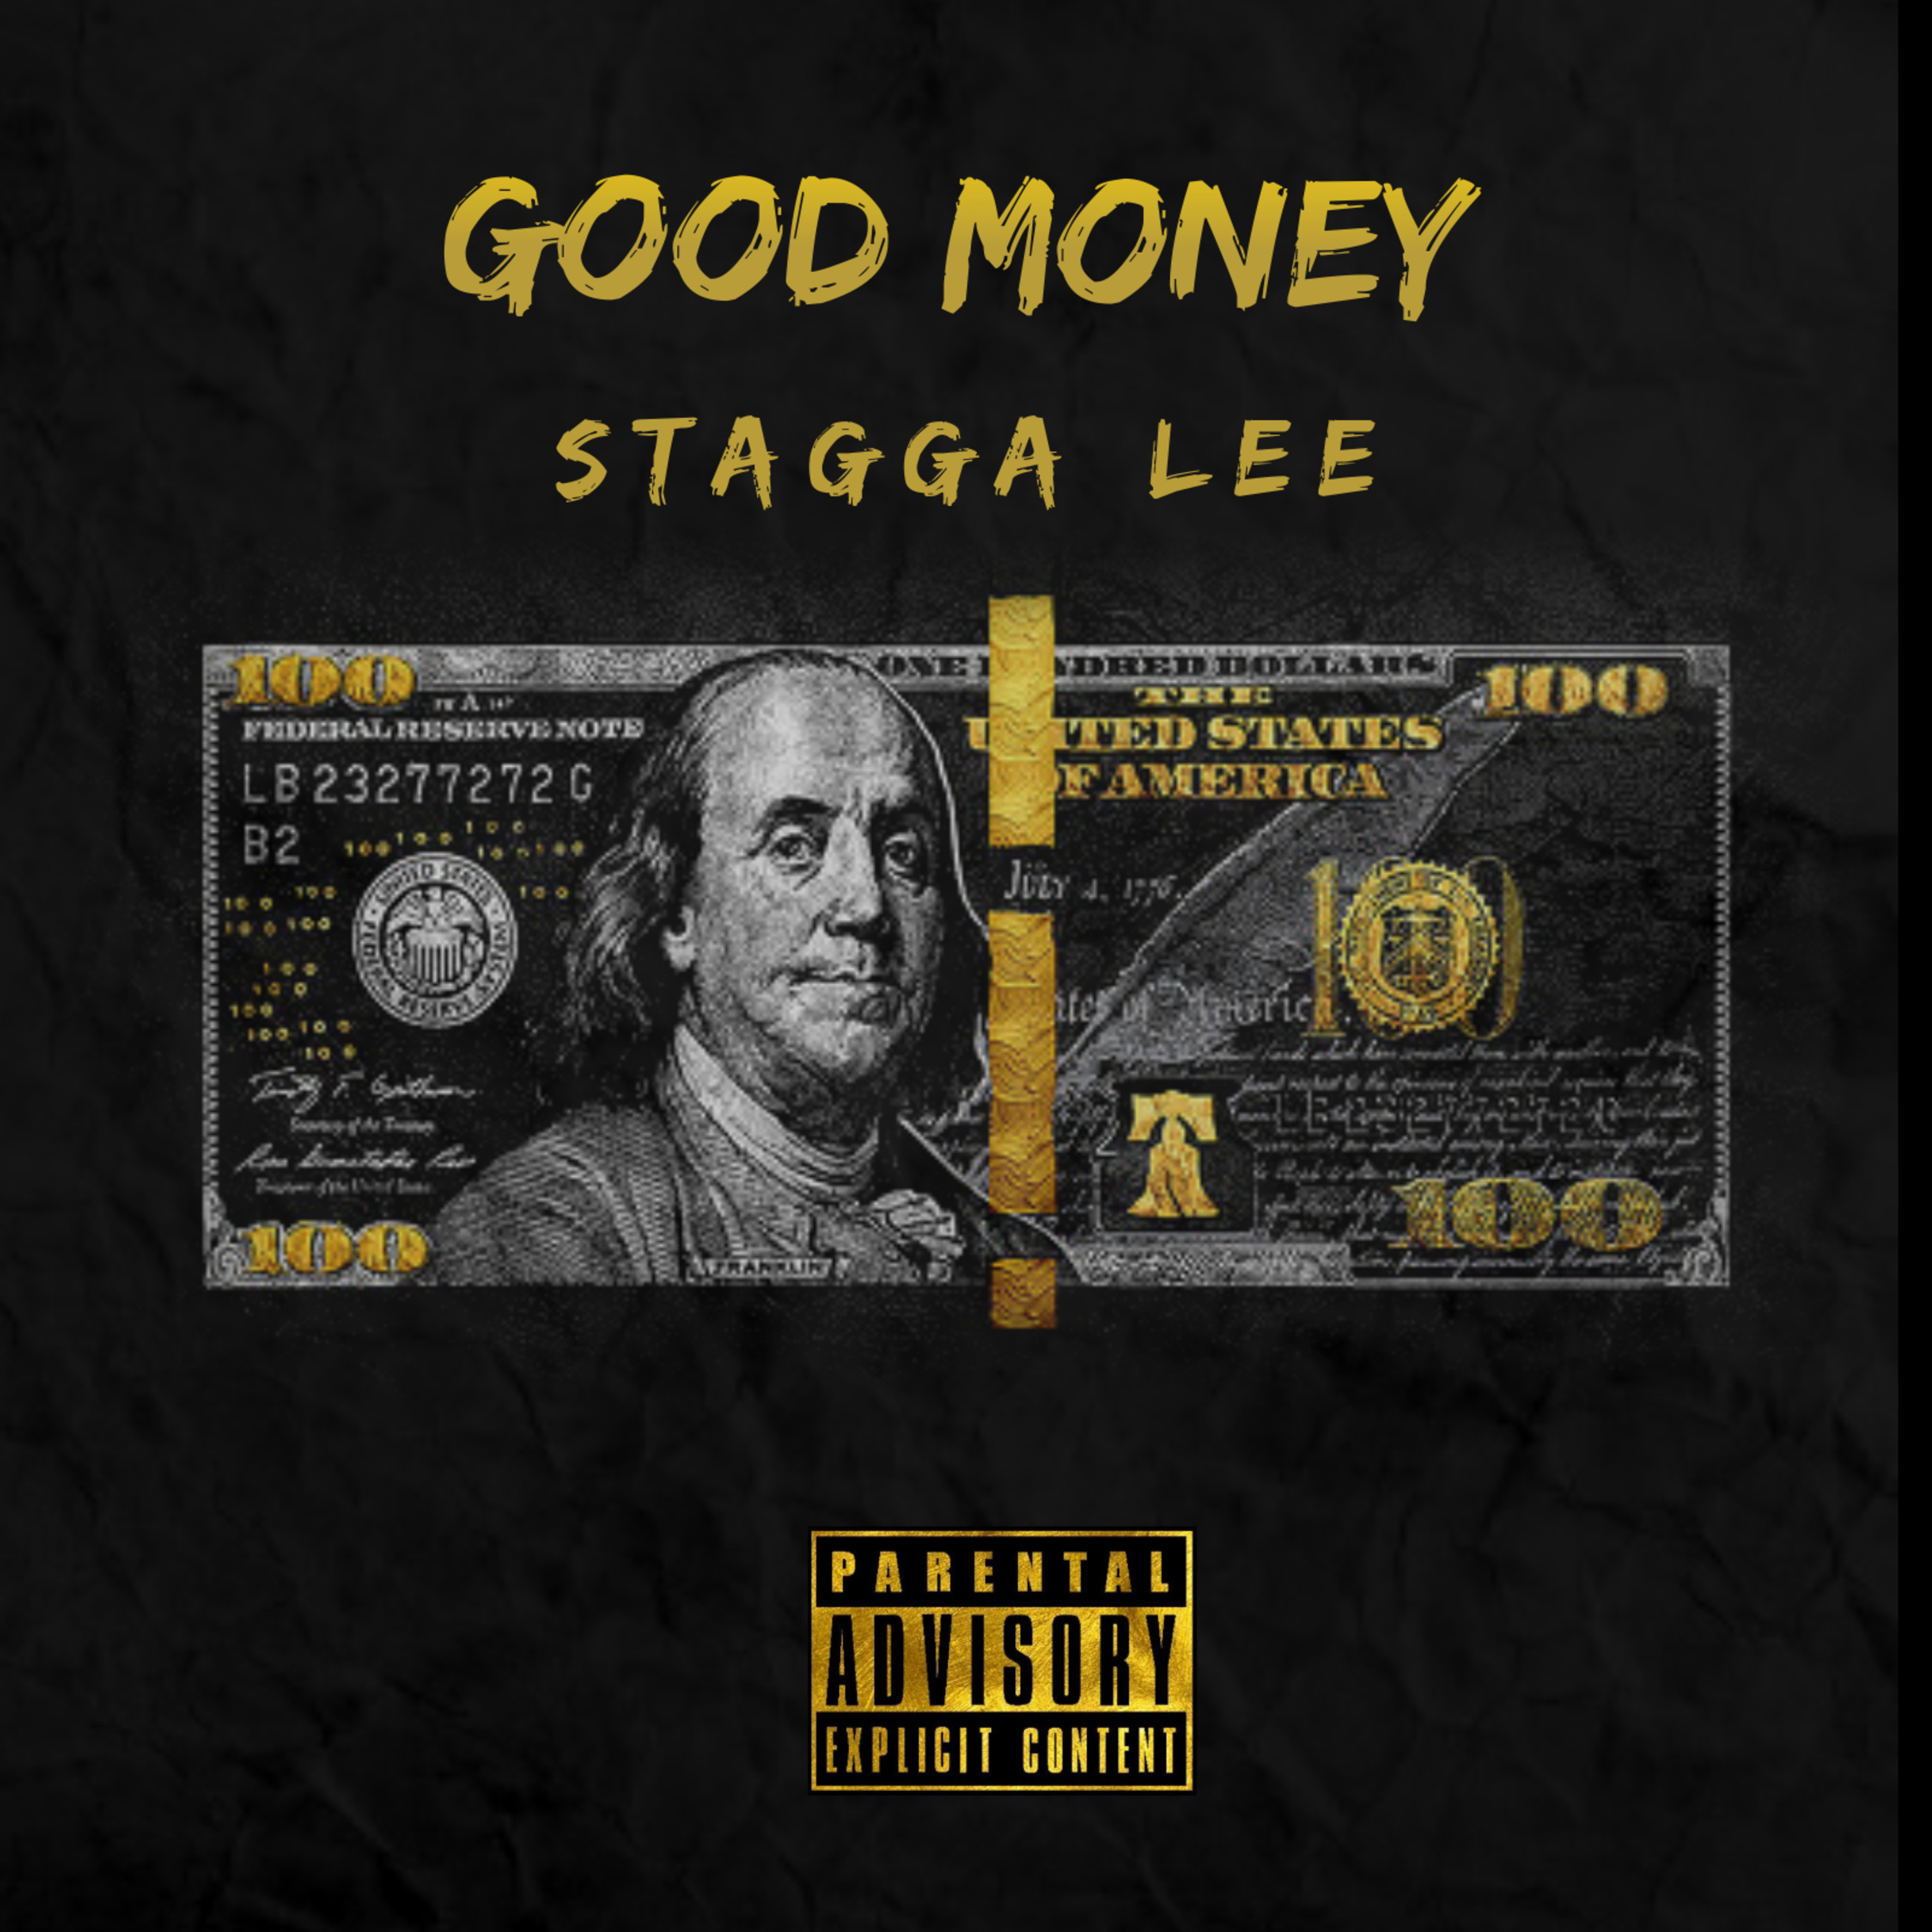 Art for Good Money by Stagga Lee